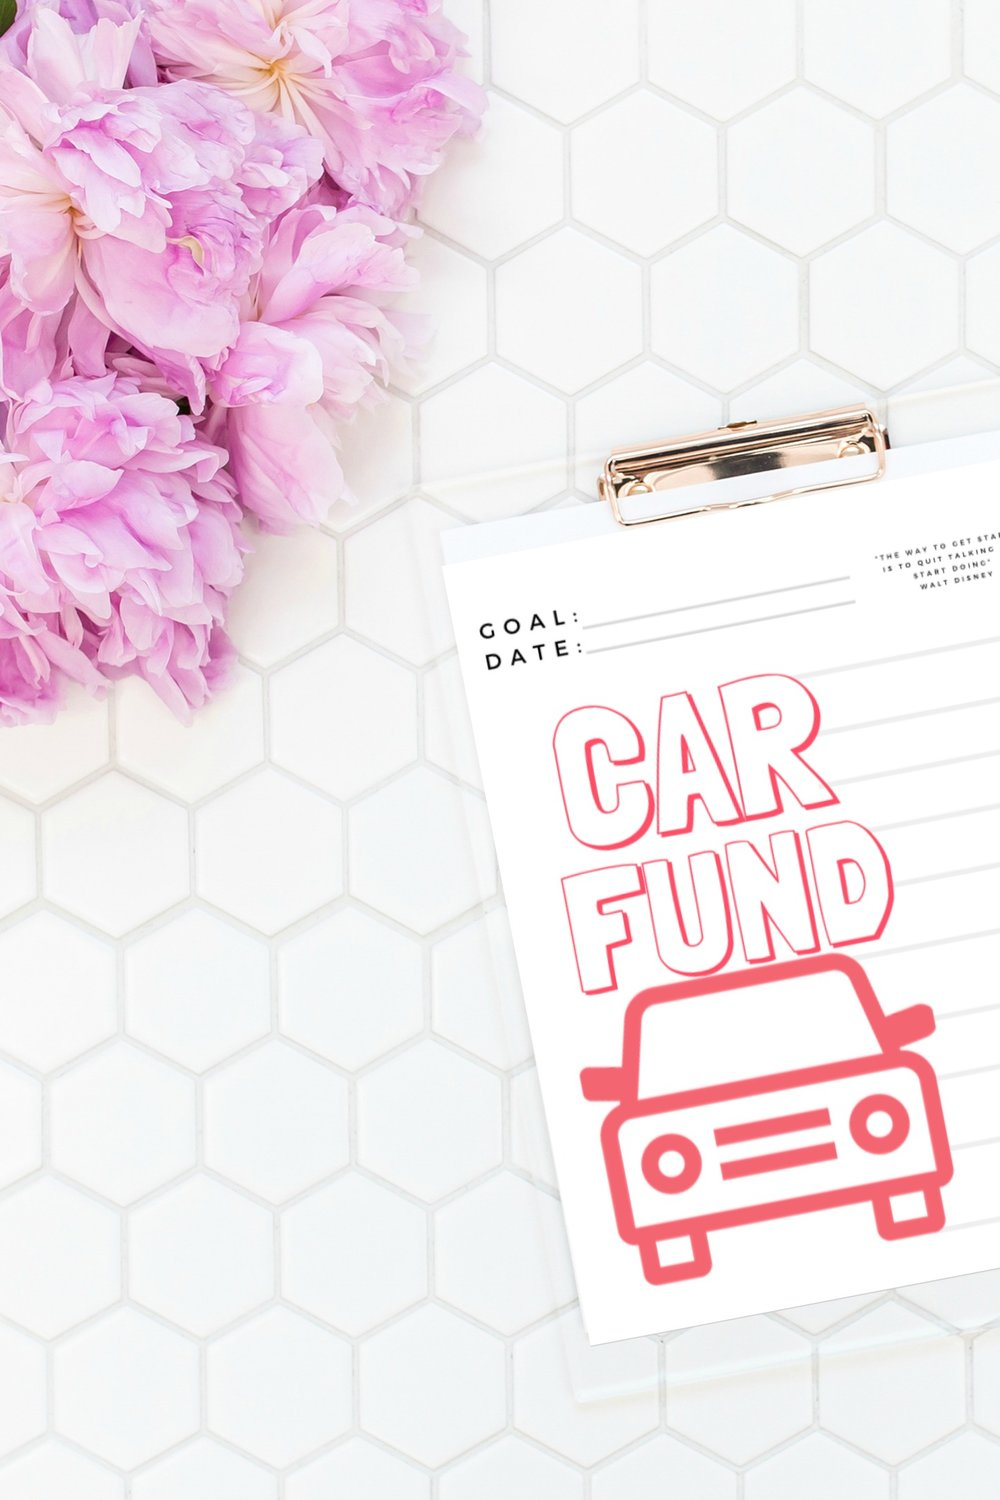 debt free car fund printable.jpg